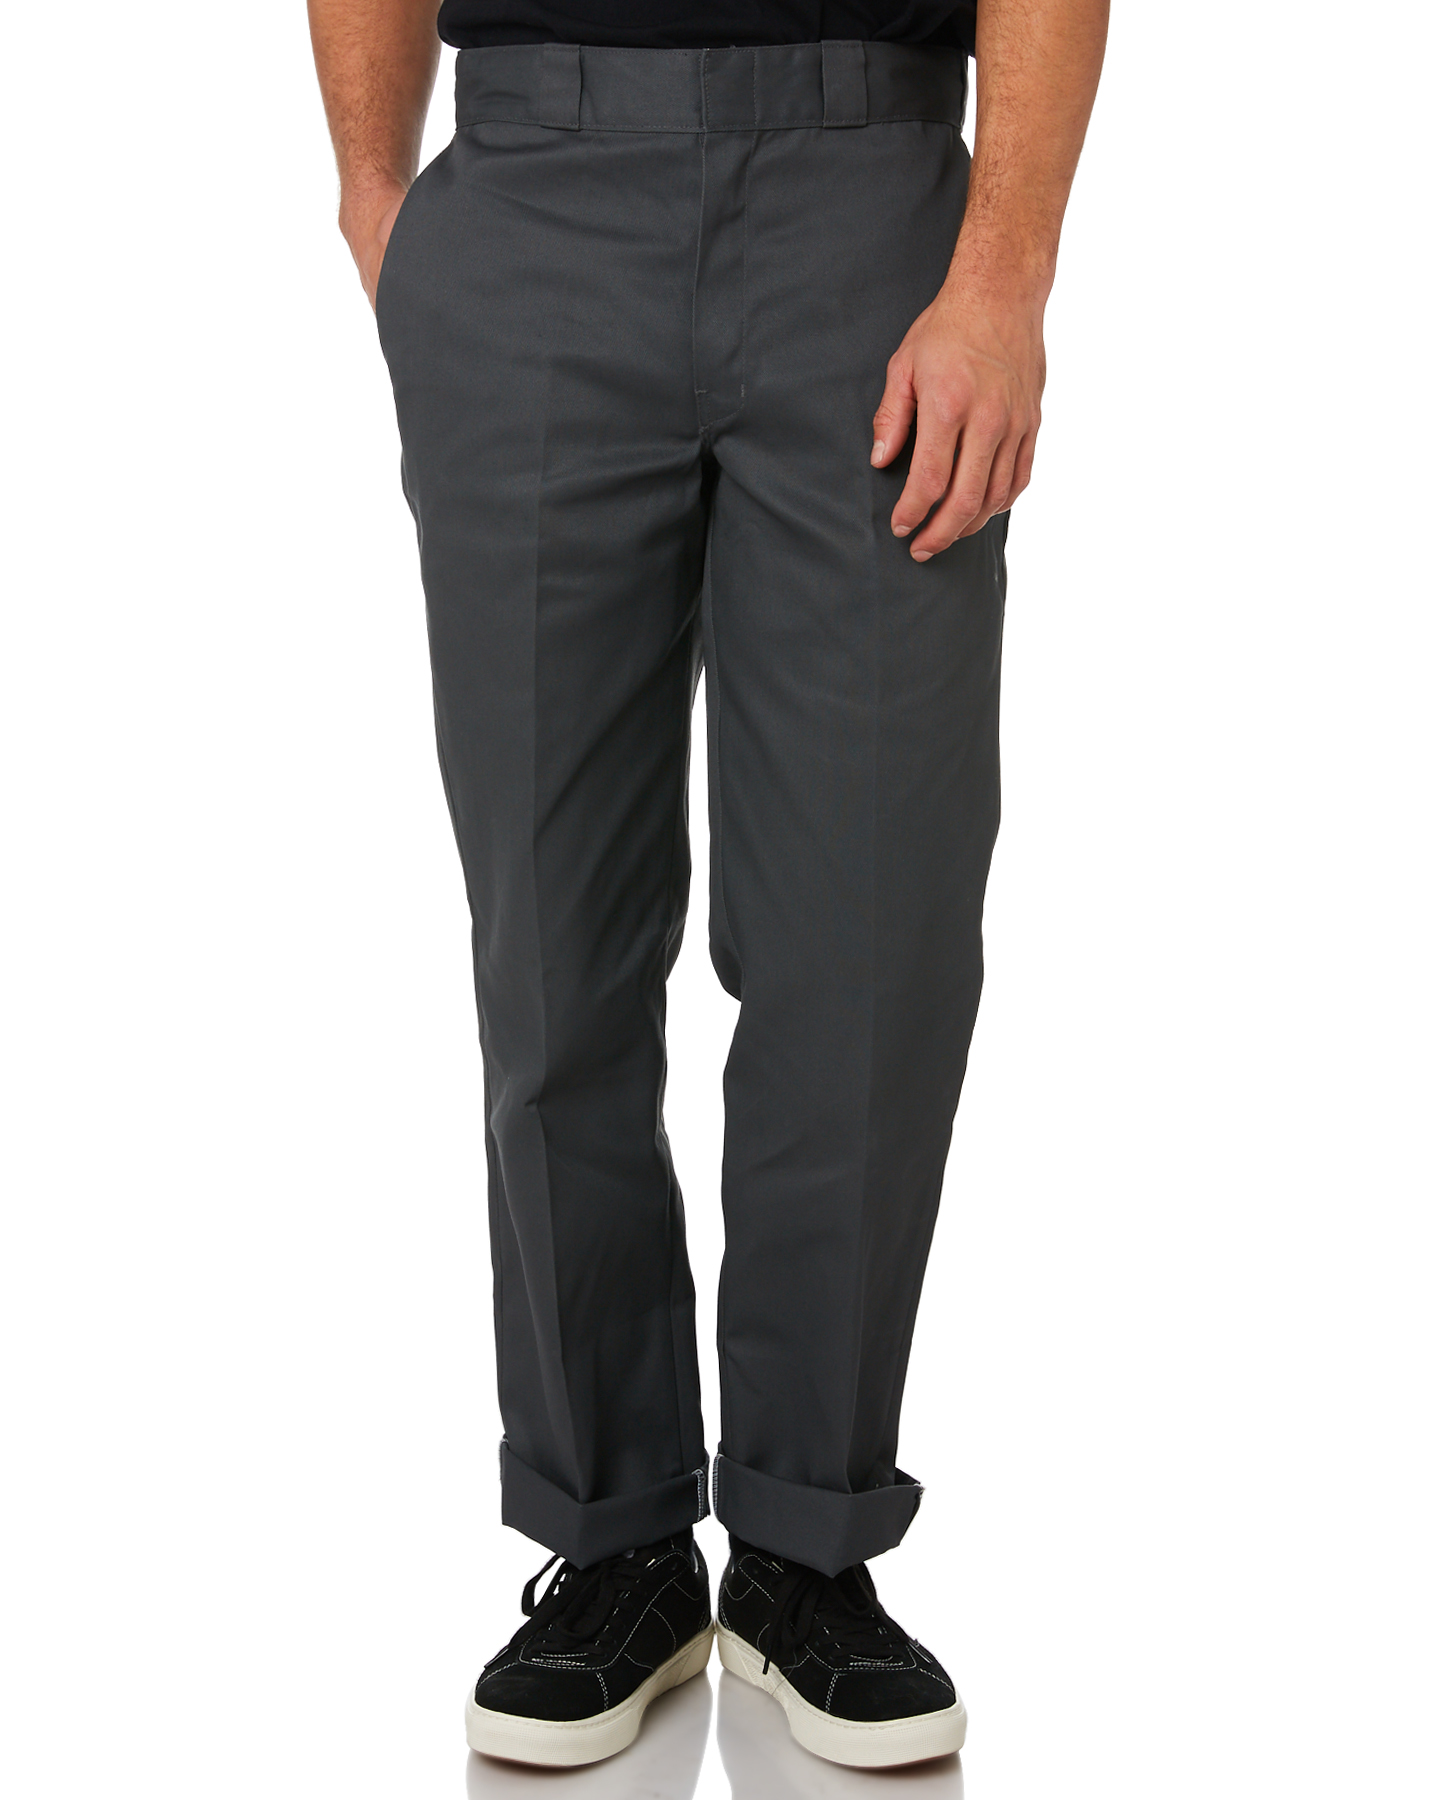 Dickies Original Fit Polyester Cotton Wrinkle Resistant Chino Pant Charcoal